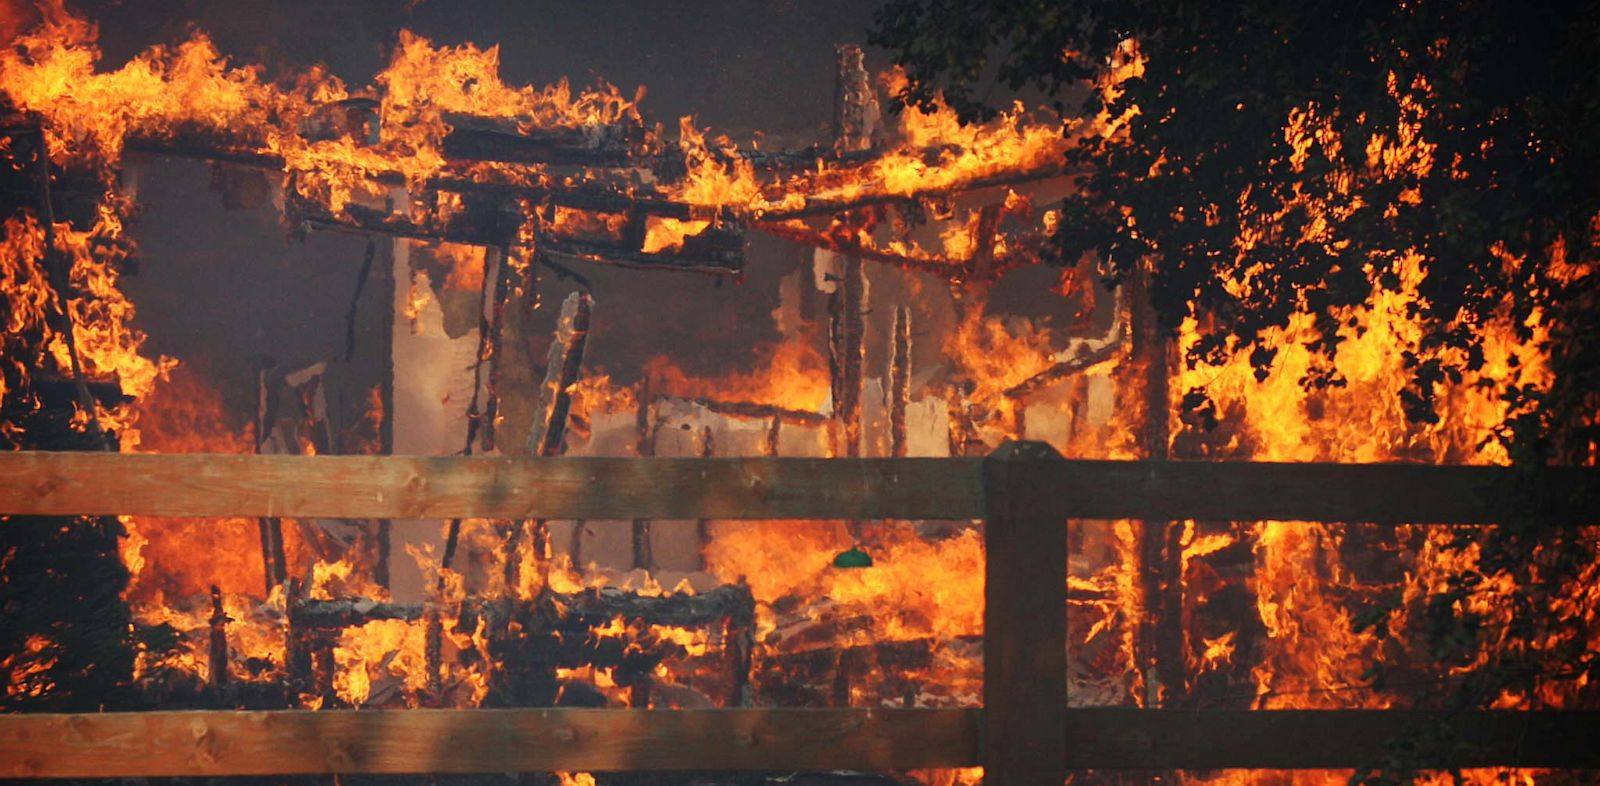 PHOTO: Multiple structures burn in the Poppet Flats area as the Silver Fire roared through the area along Hwy 243 between Banning and Idyllwild, Calif. on Wednesday, Aug. 7, 2013.